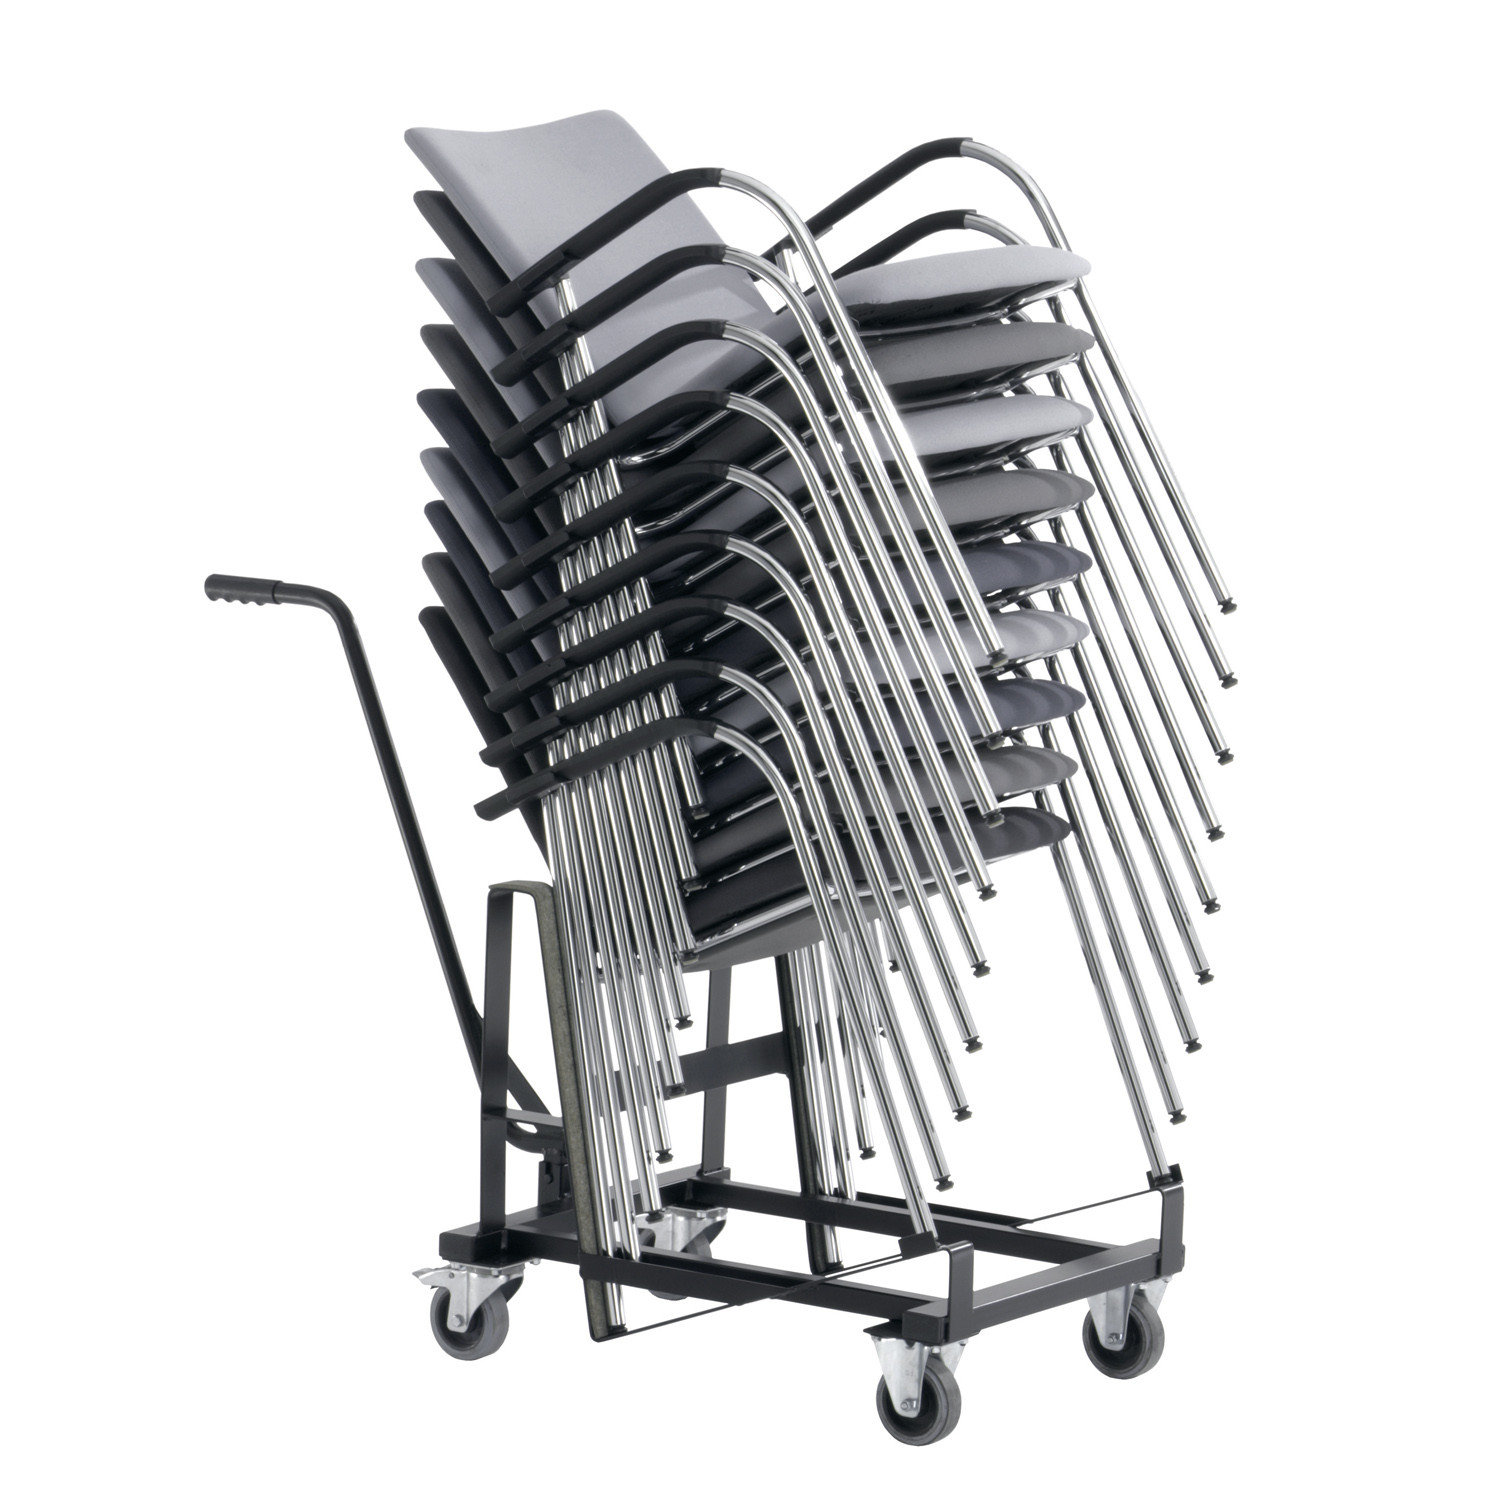 Alite Chairs stack up to 12 chairs high